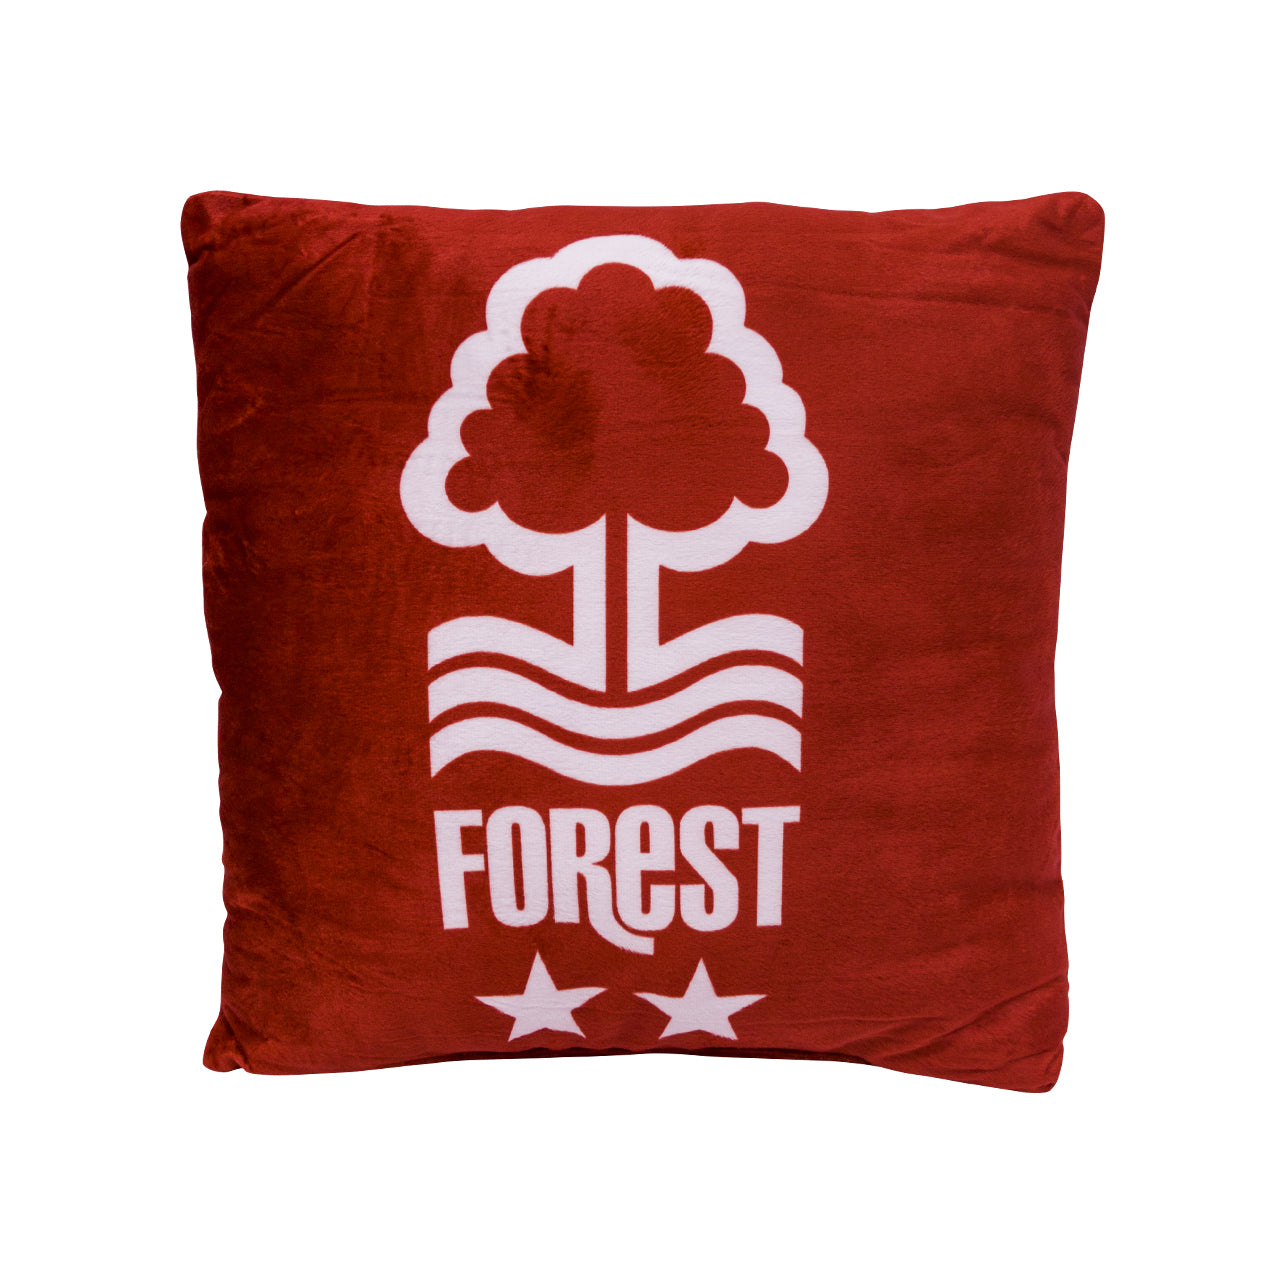 NFFC Crest Cushion - Nottingham Forest